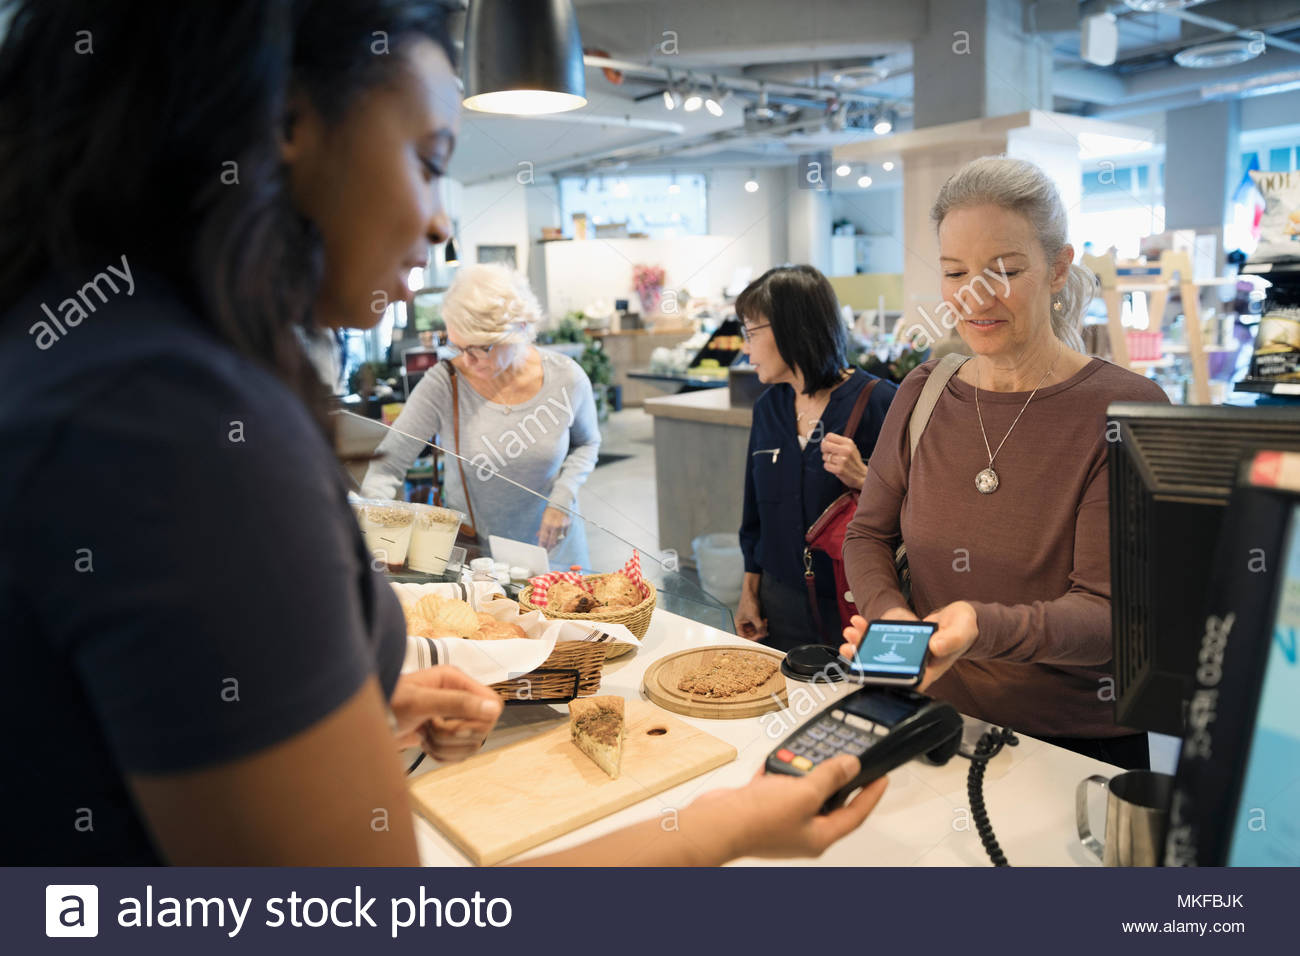 Senior woman with smart phone using contactless payment at bakery checkout Stock Photo